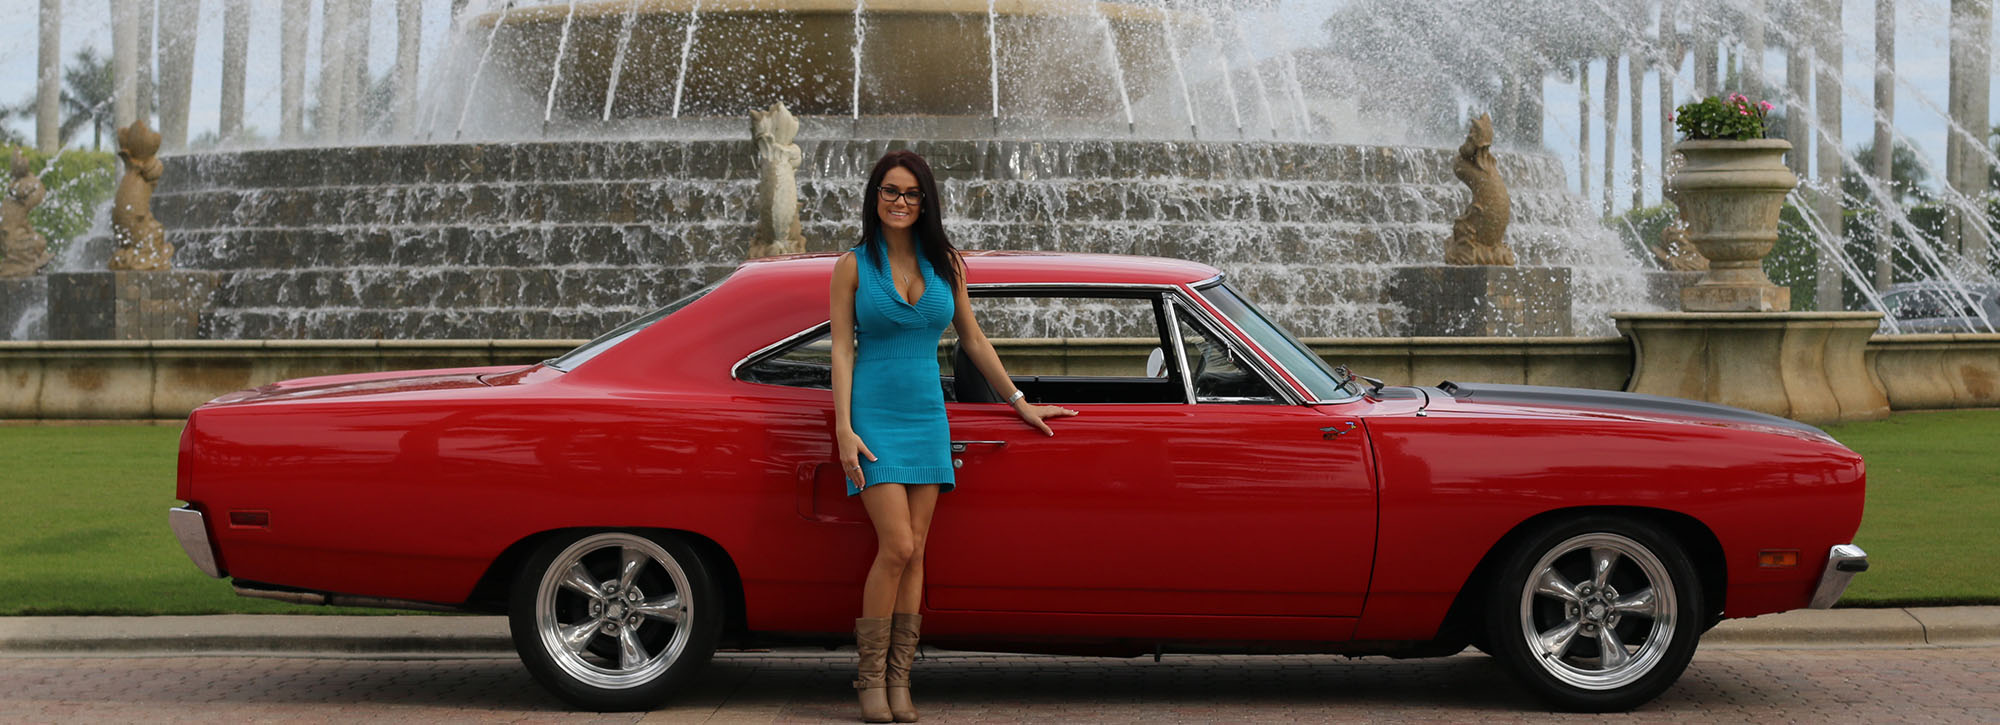 Classic Muscle Cars For Sale >> Financing Available Musclecarsforsaleinc Com Buy Your